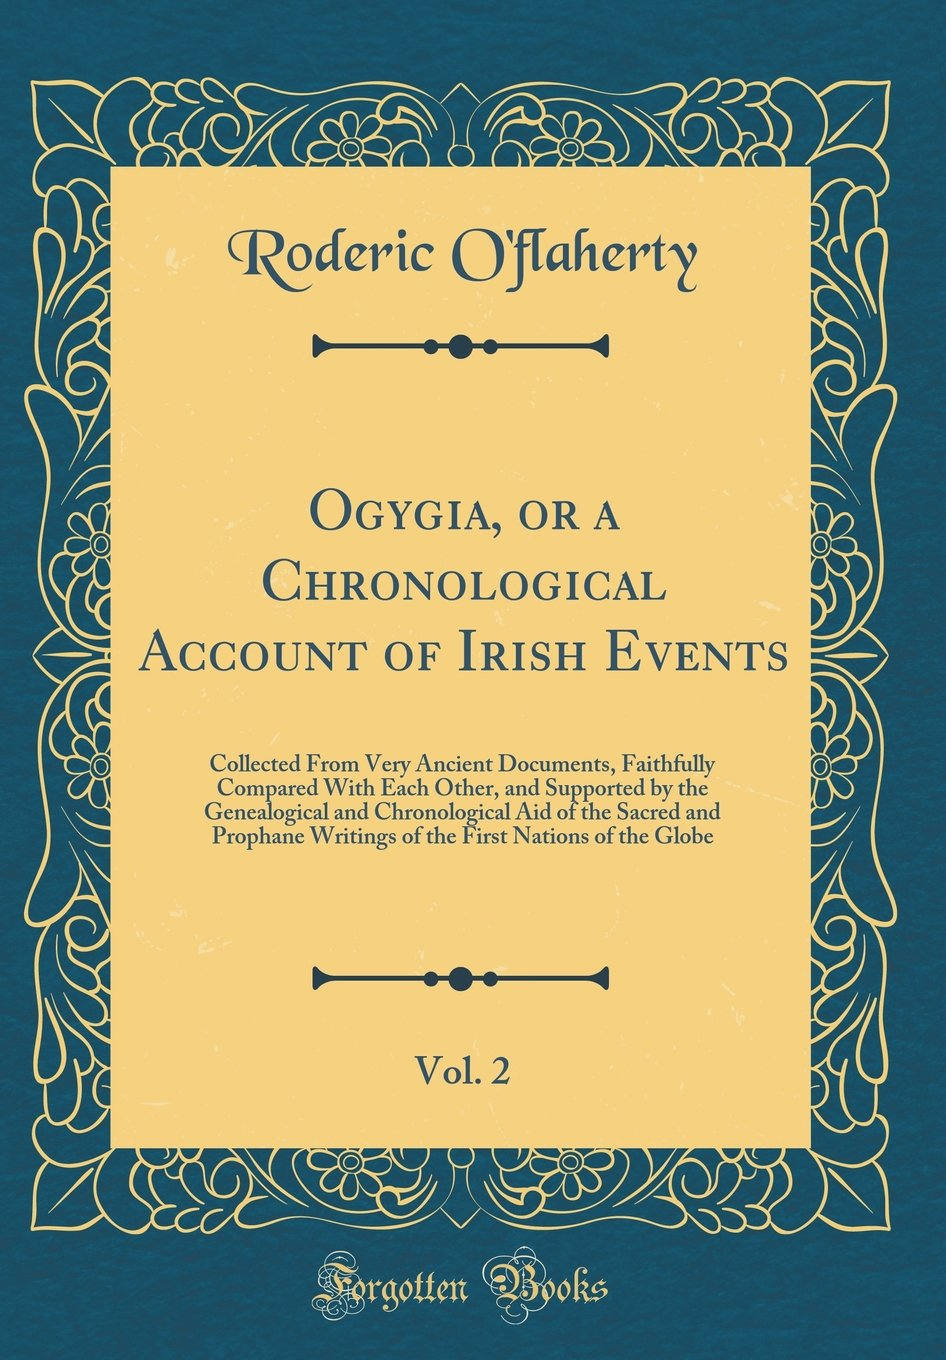 Ogygia, or a Chronological Account of Irish Events, Vol. 2: Collected From Very Ancient Documents, Faithfully Compared With Each Other, and Supported ... Prophane Writings of the First Nations of the PDF